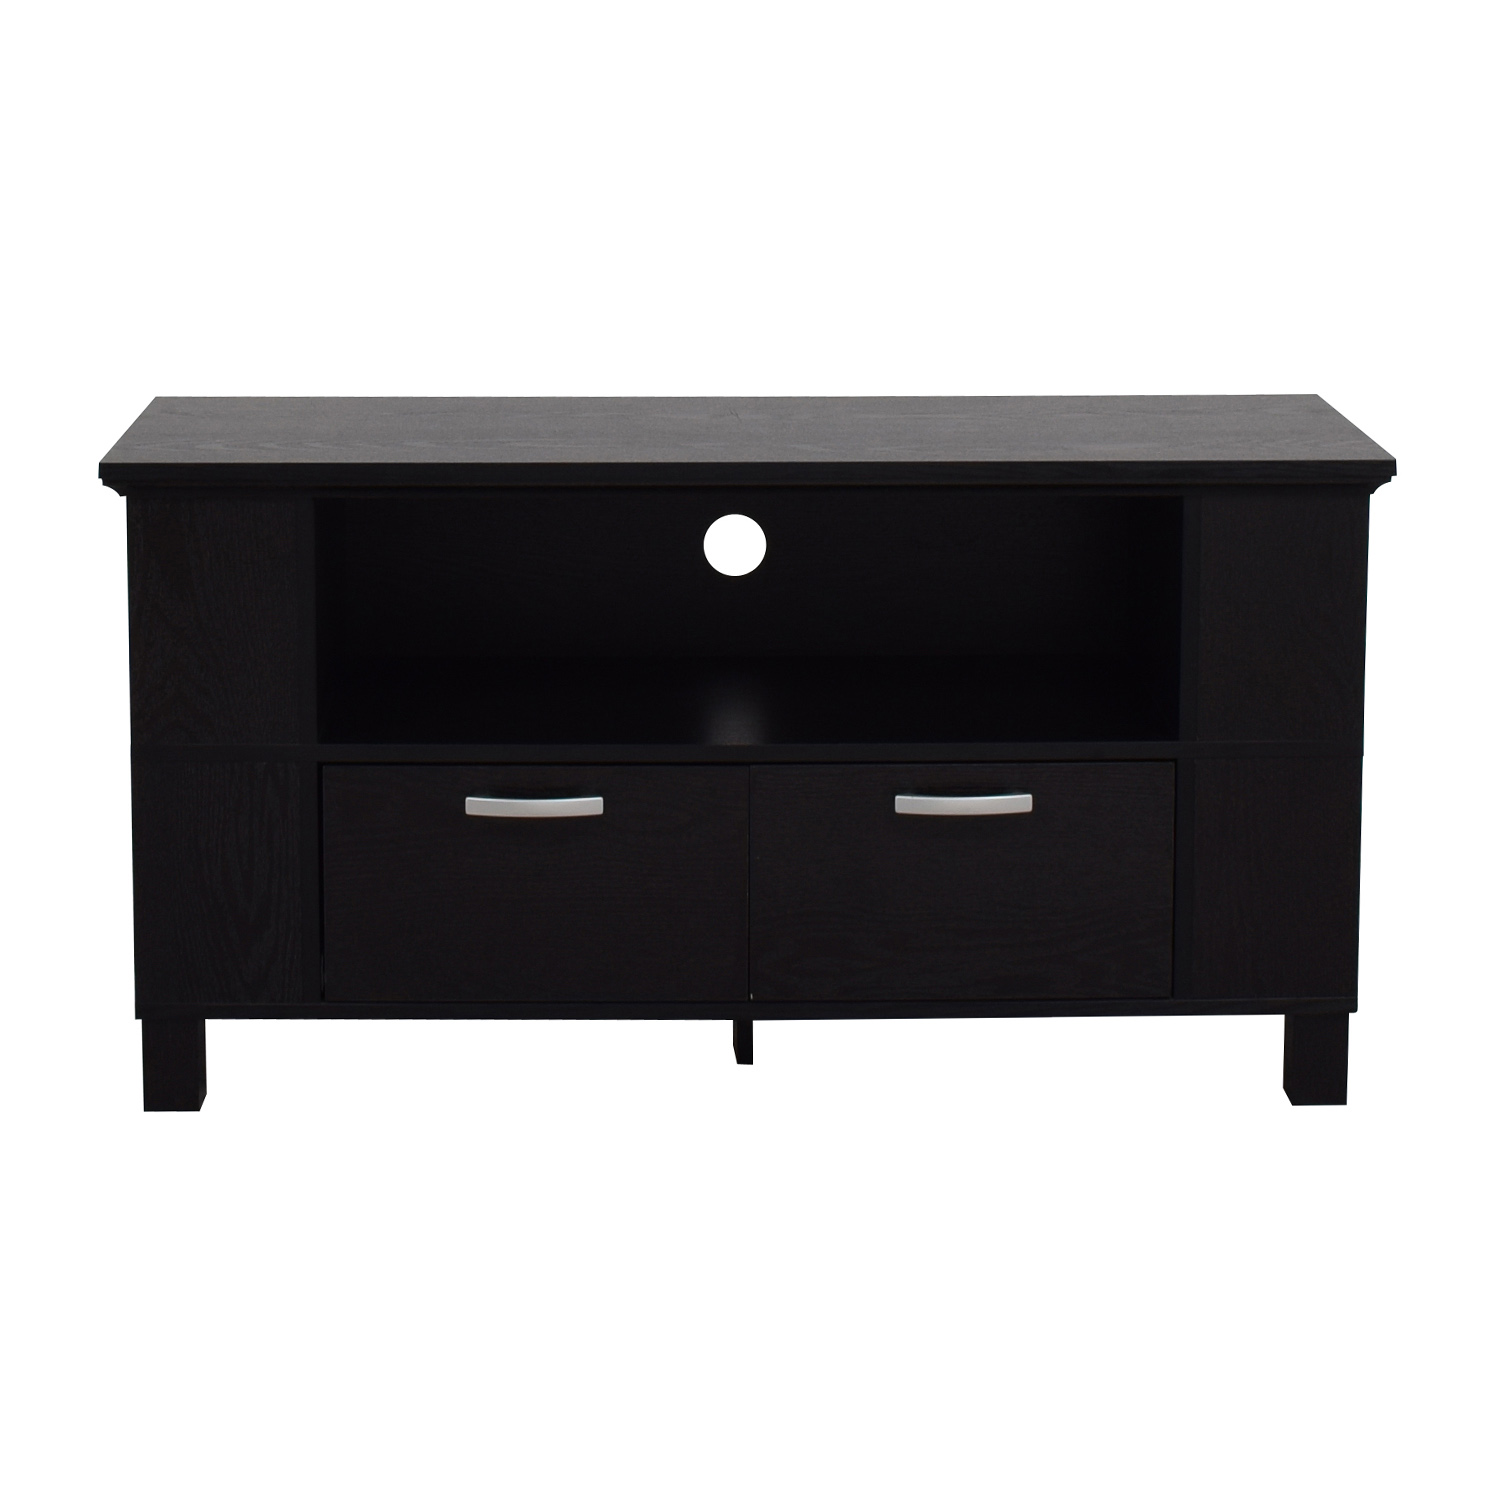 Espresso TV Stand with Two Drawers with Chrome Handles coupon